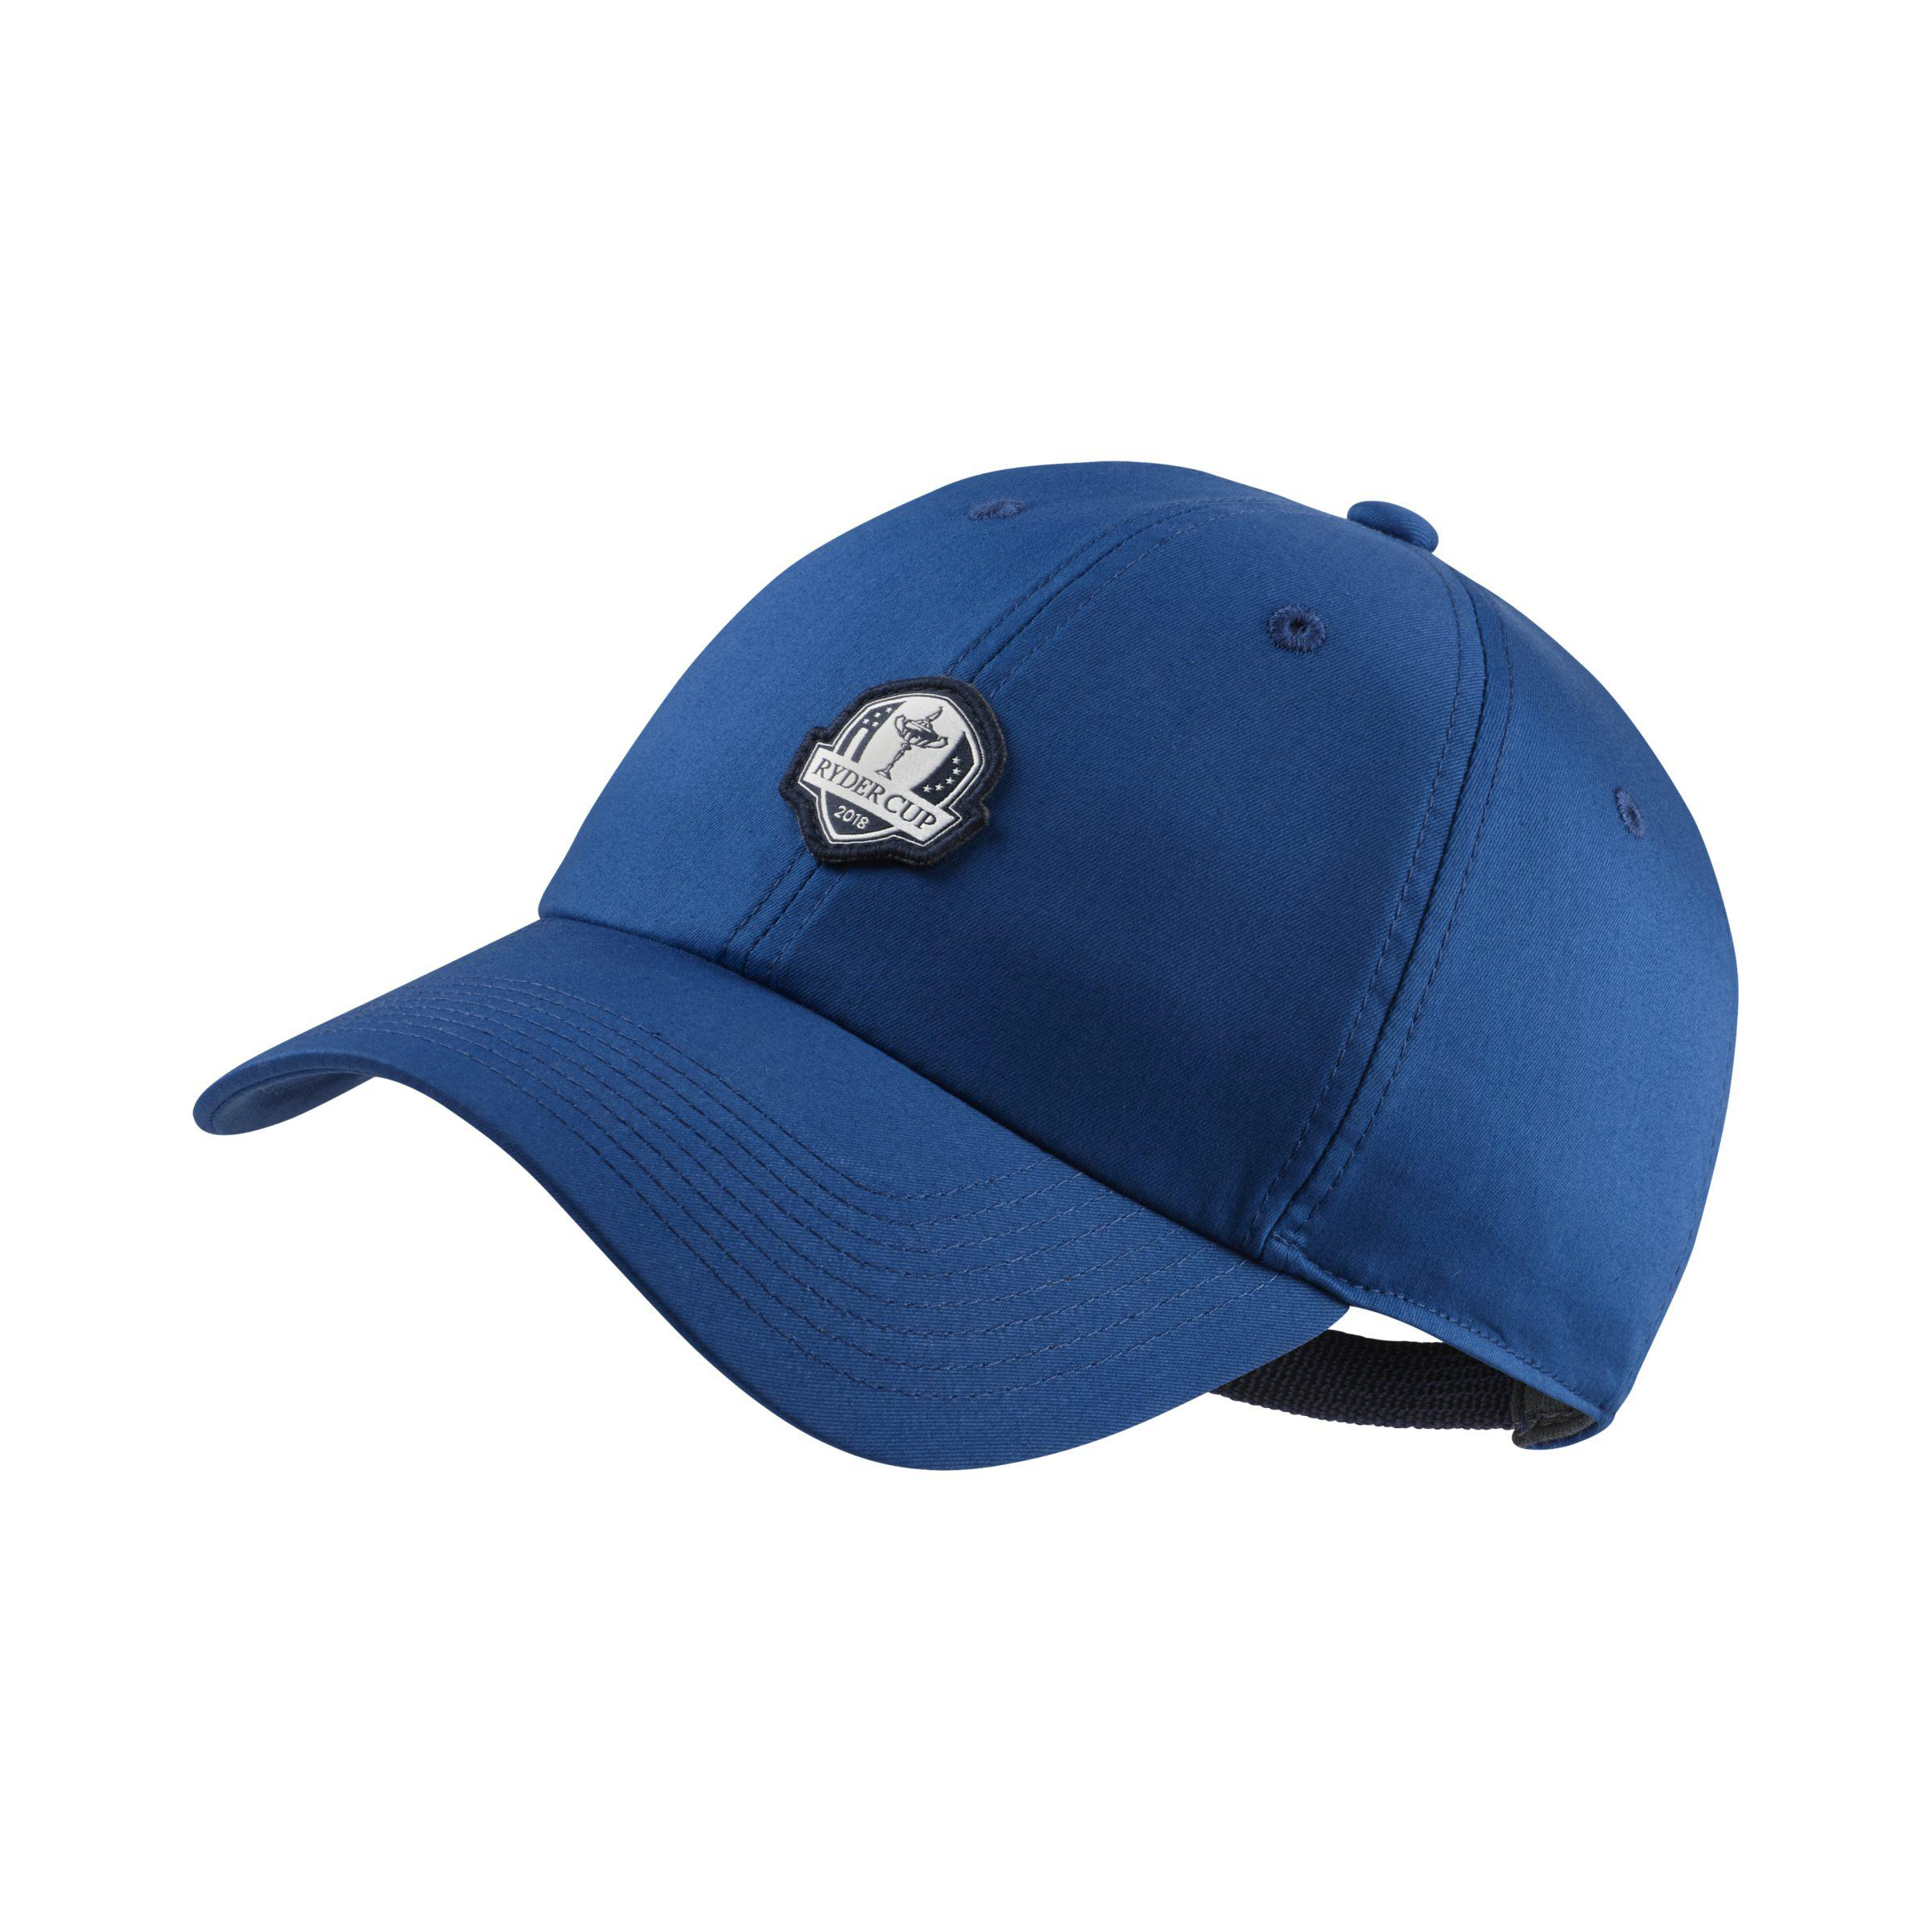 2f9c1c42d50 Nike Heritage86 Ryder Cup Golf Hat in Blue - Lyst